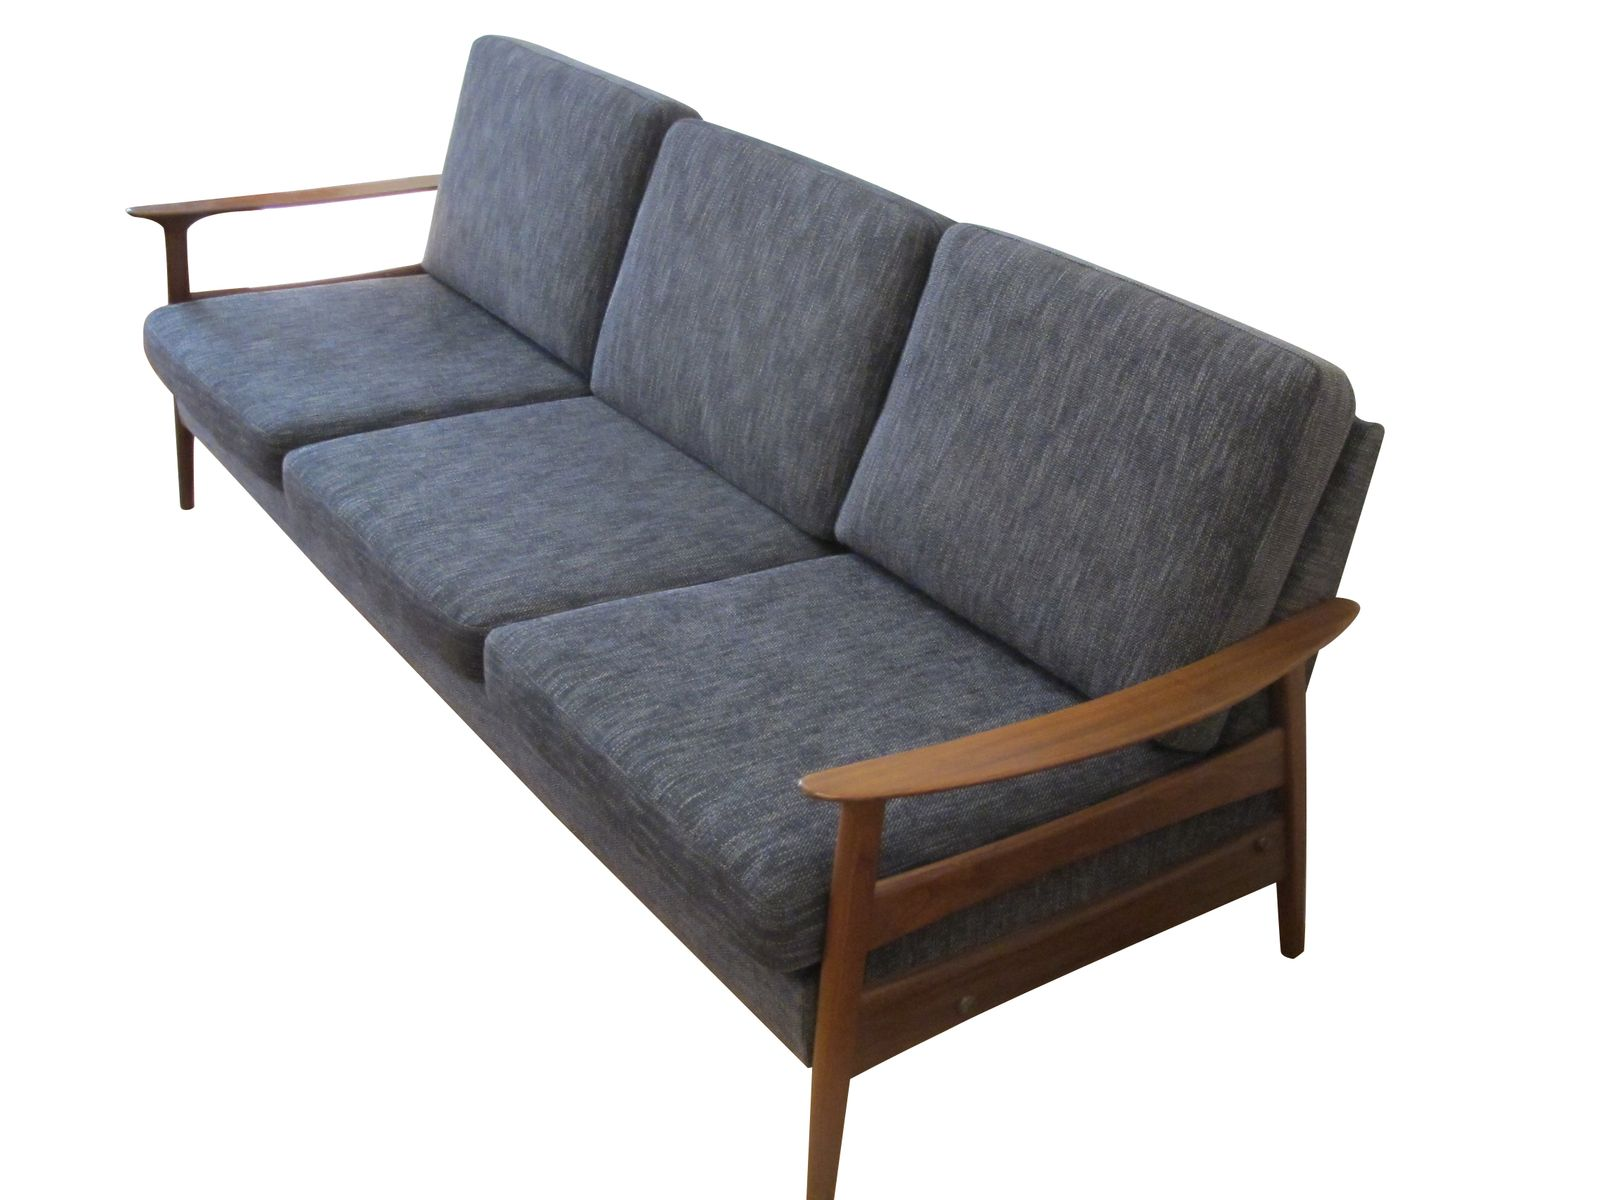 Scandinavian style teak sofa 1960s for sale at pamono for Scandinavian style sofa